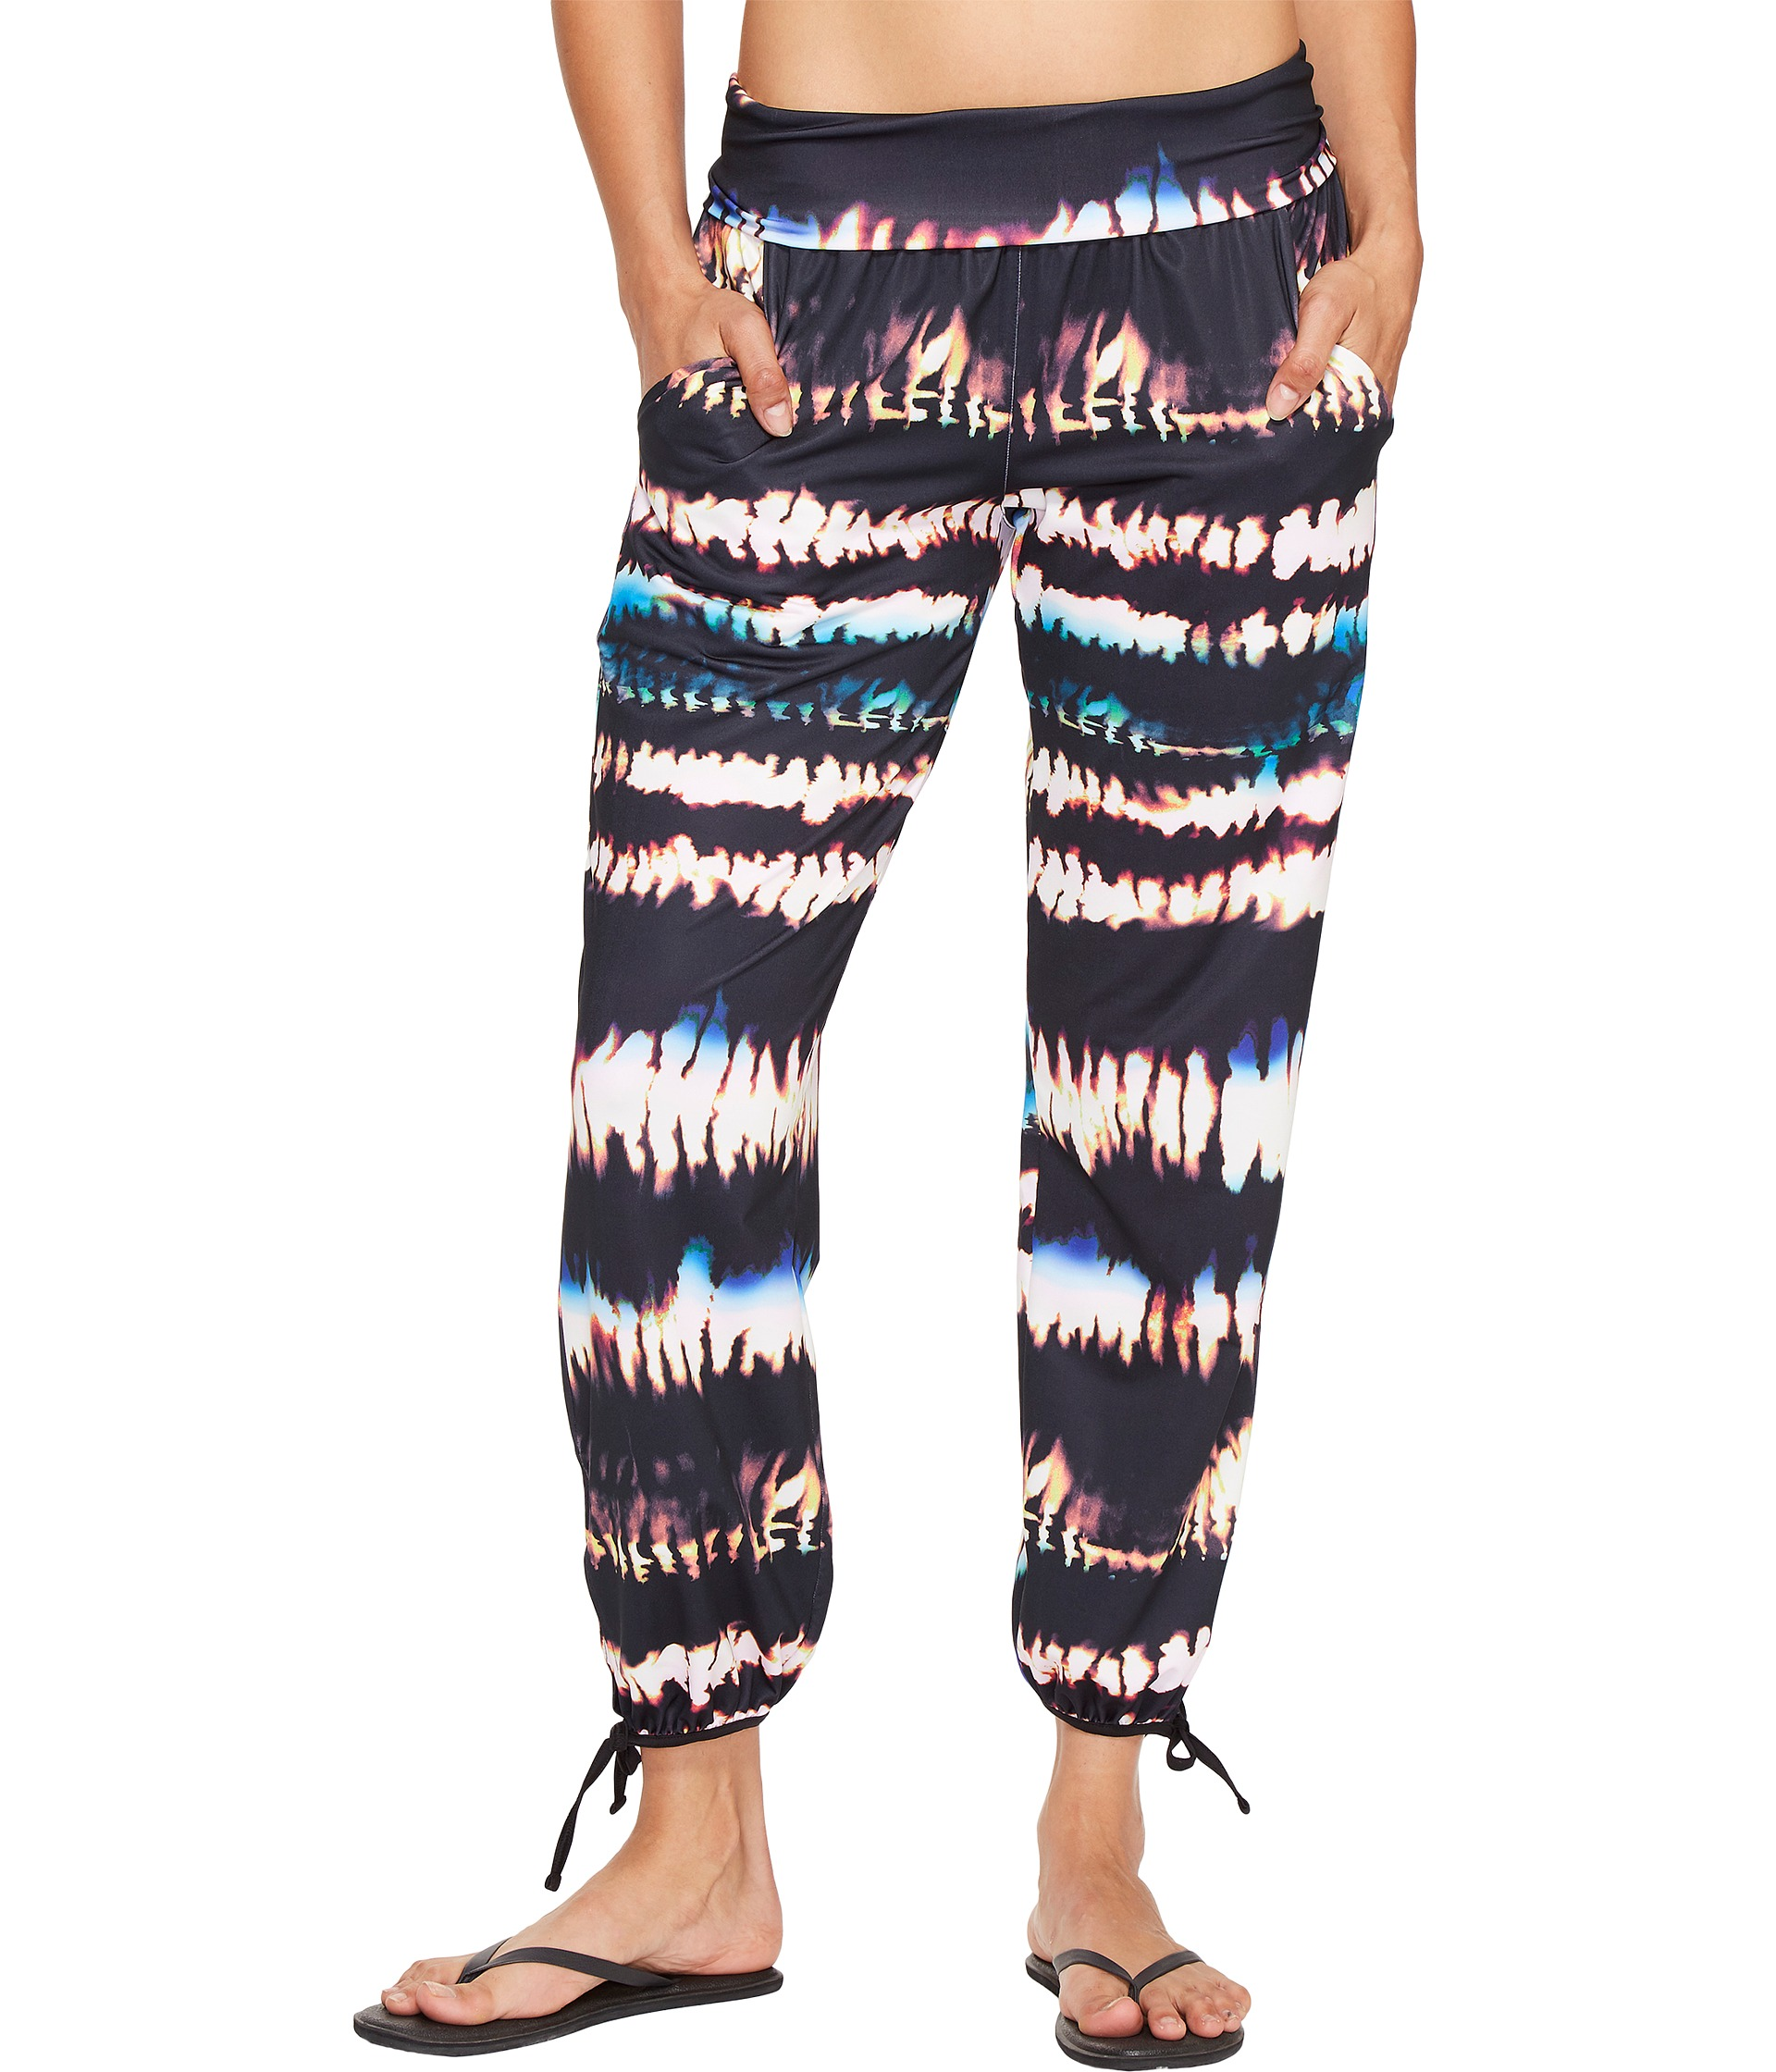 Lucy Yoga Flow Pants At Zappos.com